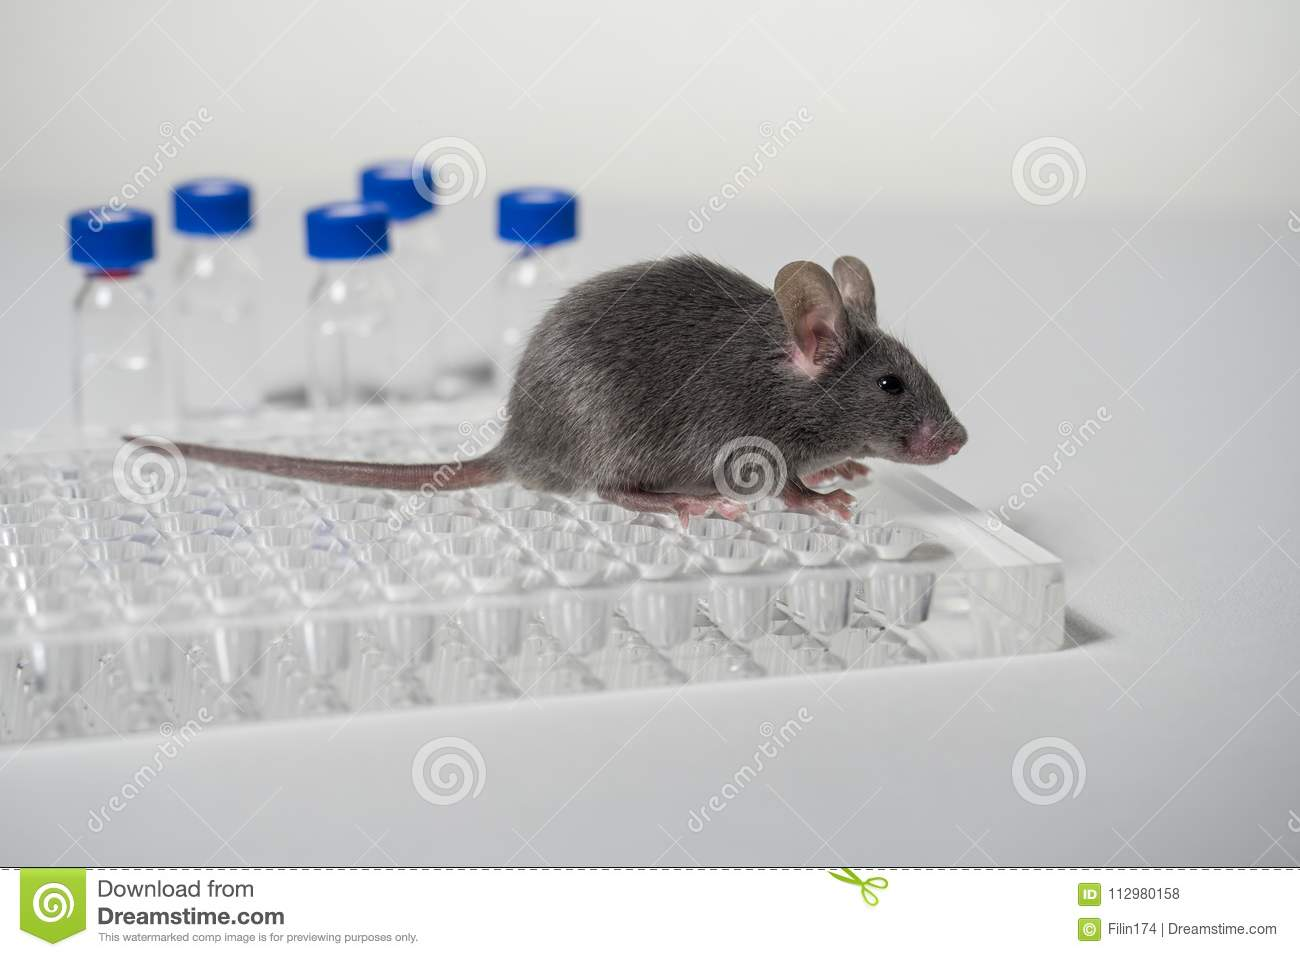 A gray laboratory mouse with an immunological plate and vials.